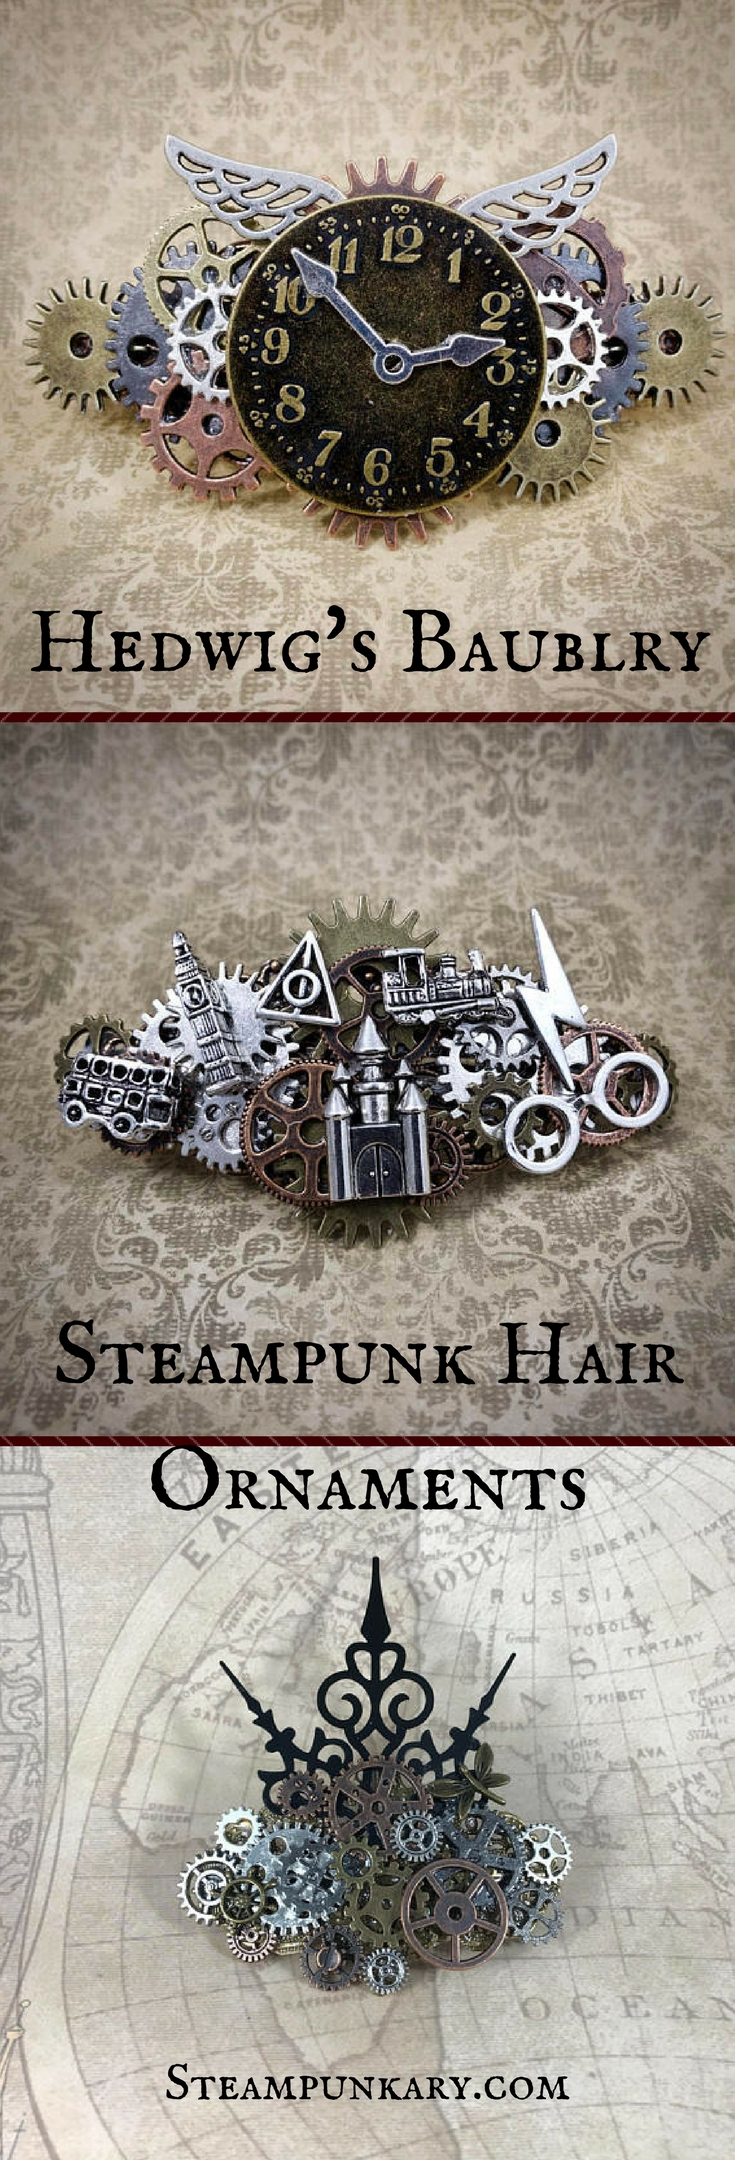 Hedwigs Baublry Steampunk Hair Ornaments